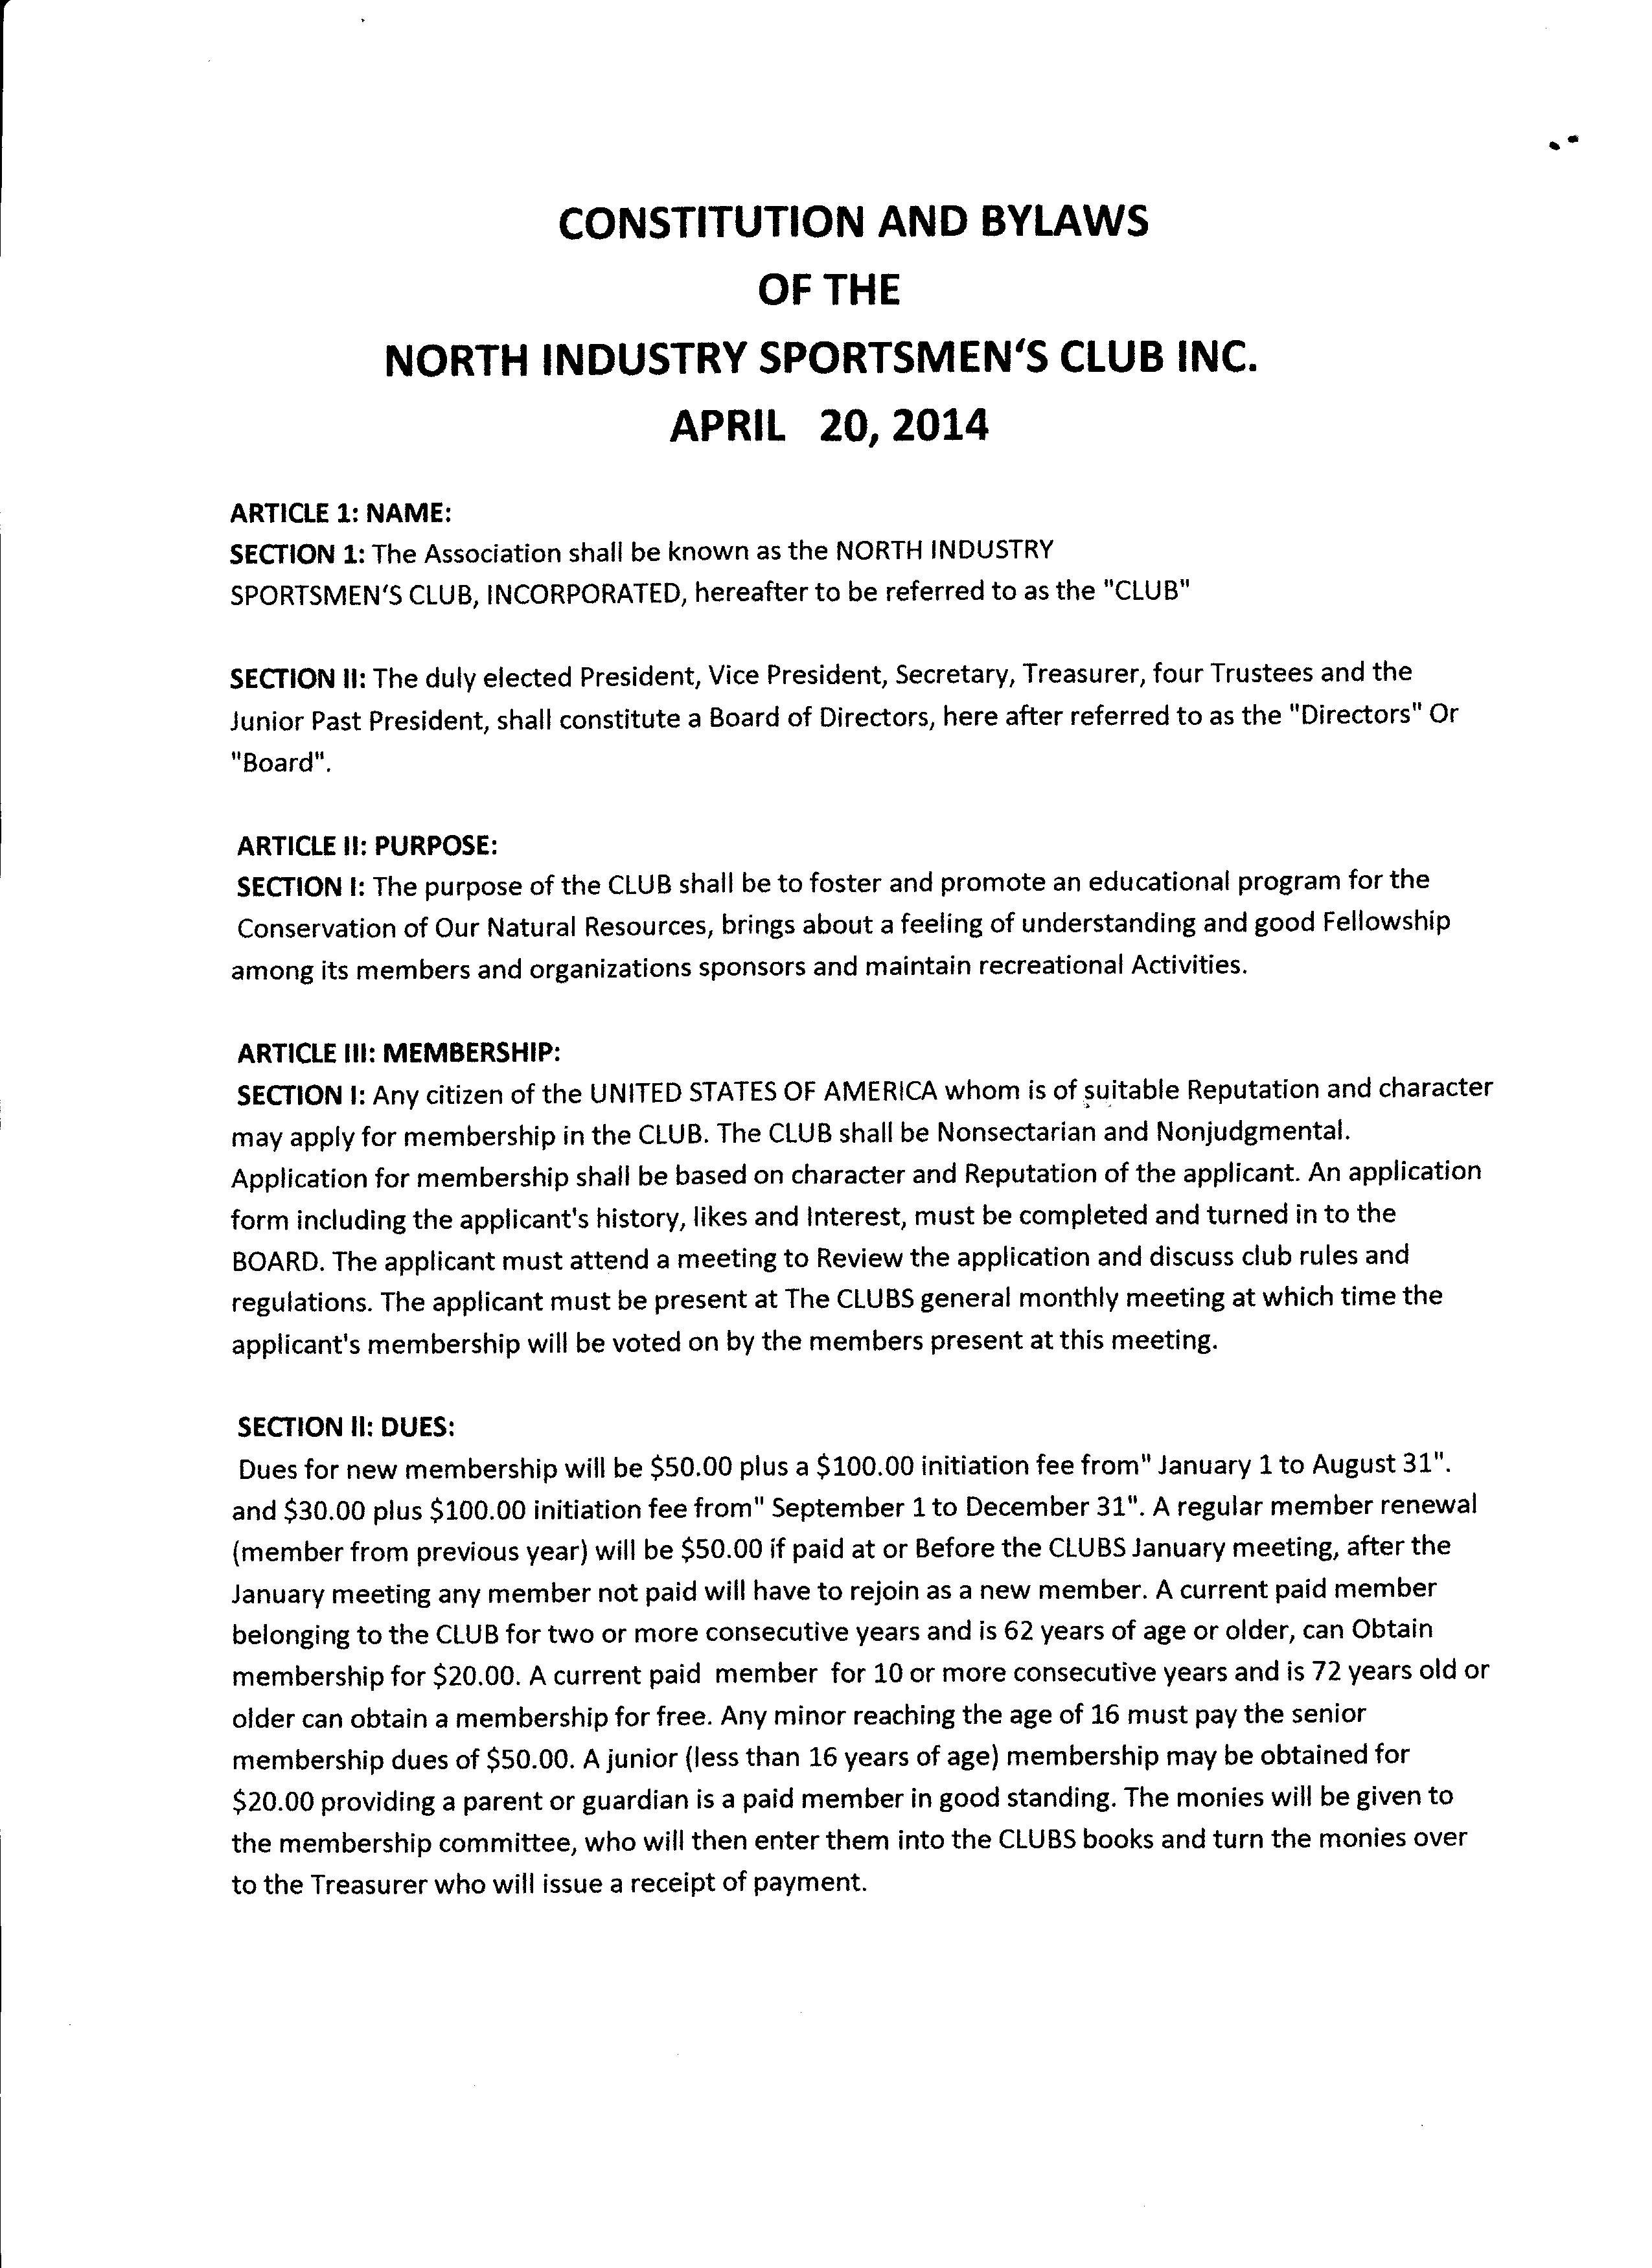 Constitution and bylaws north industry sportsmen 39 s club for Constitution and bylaws template